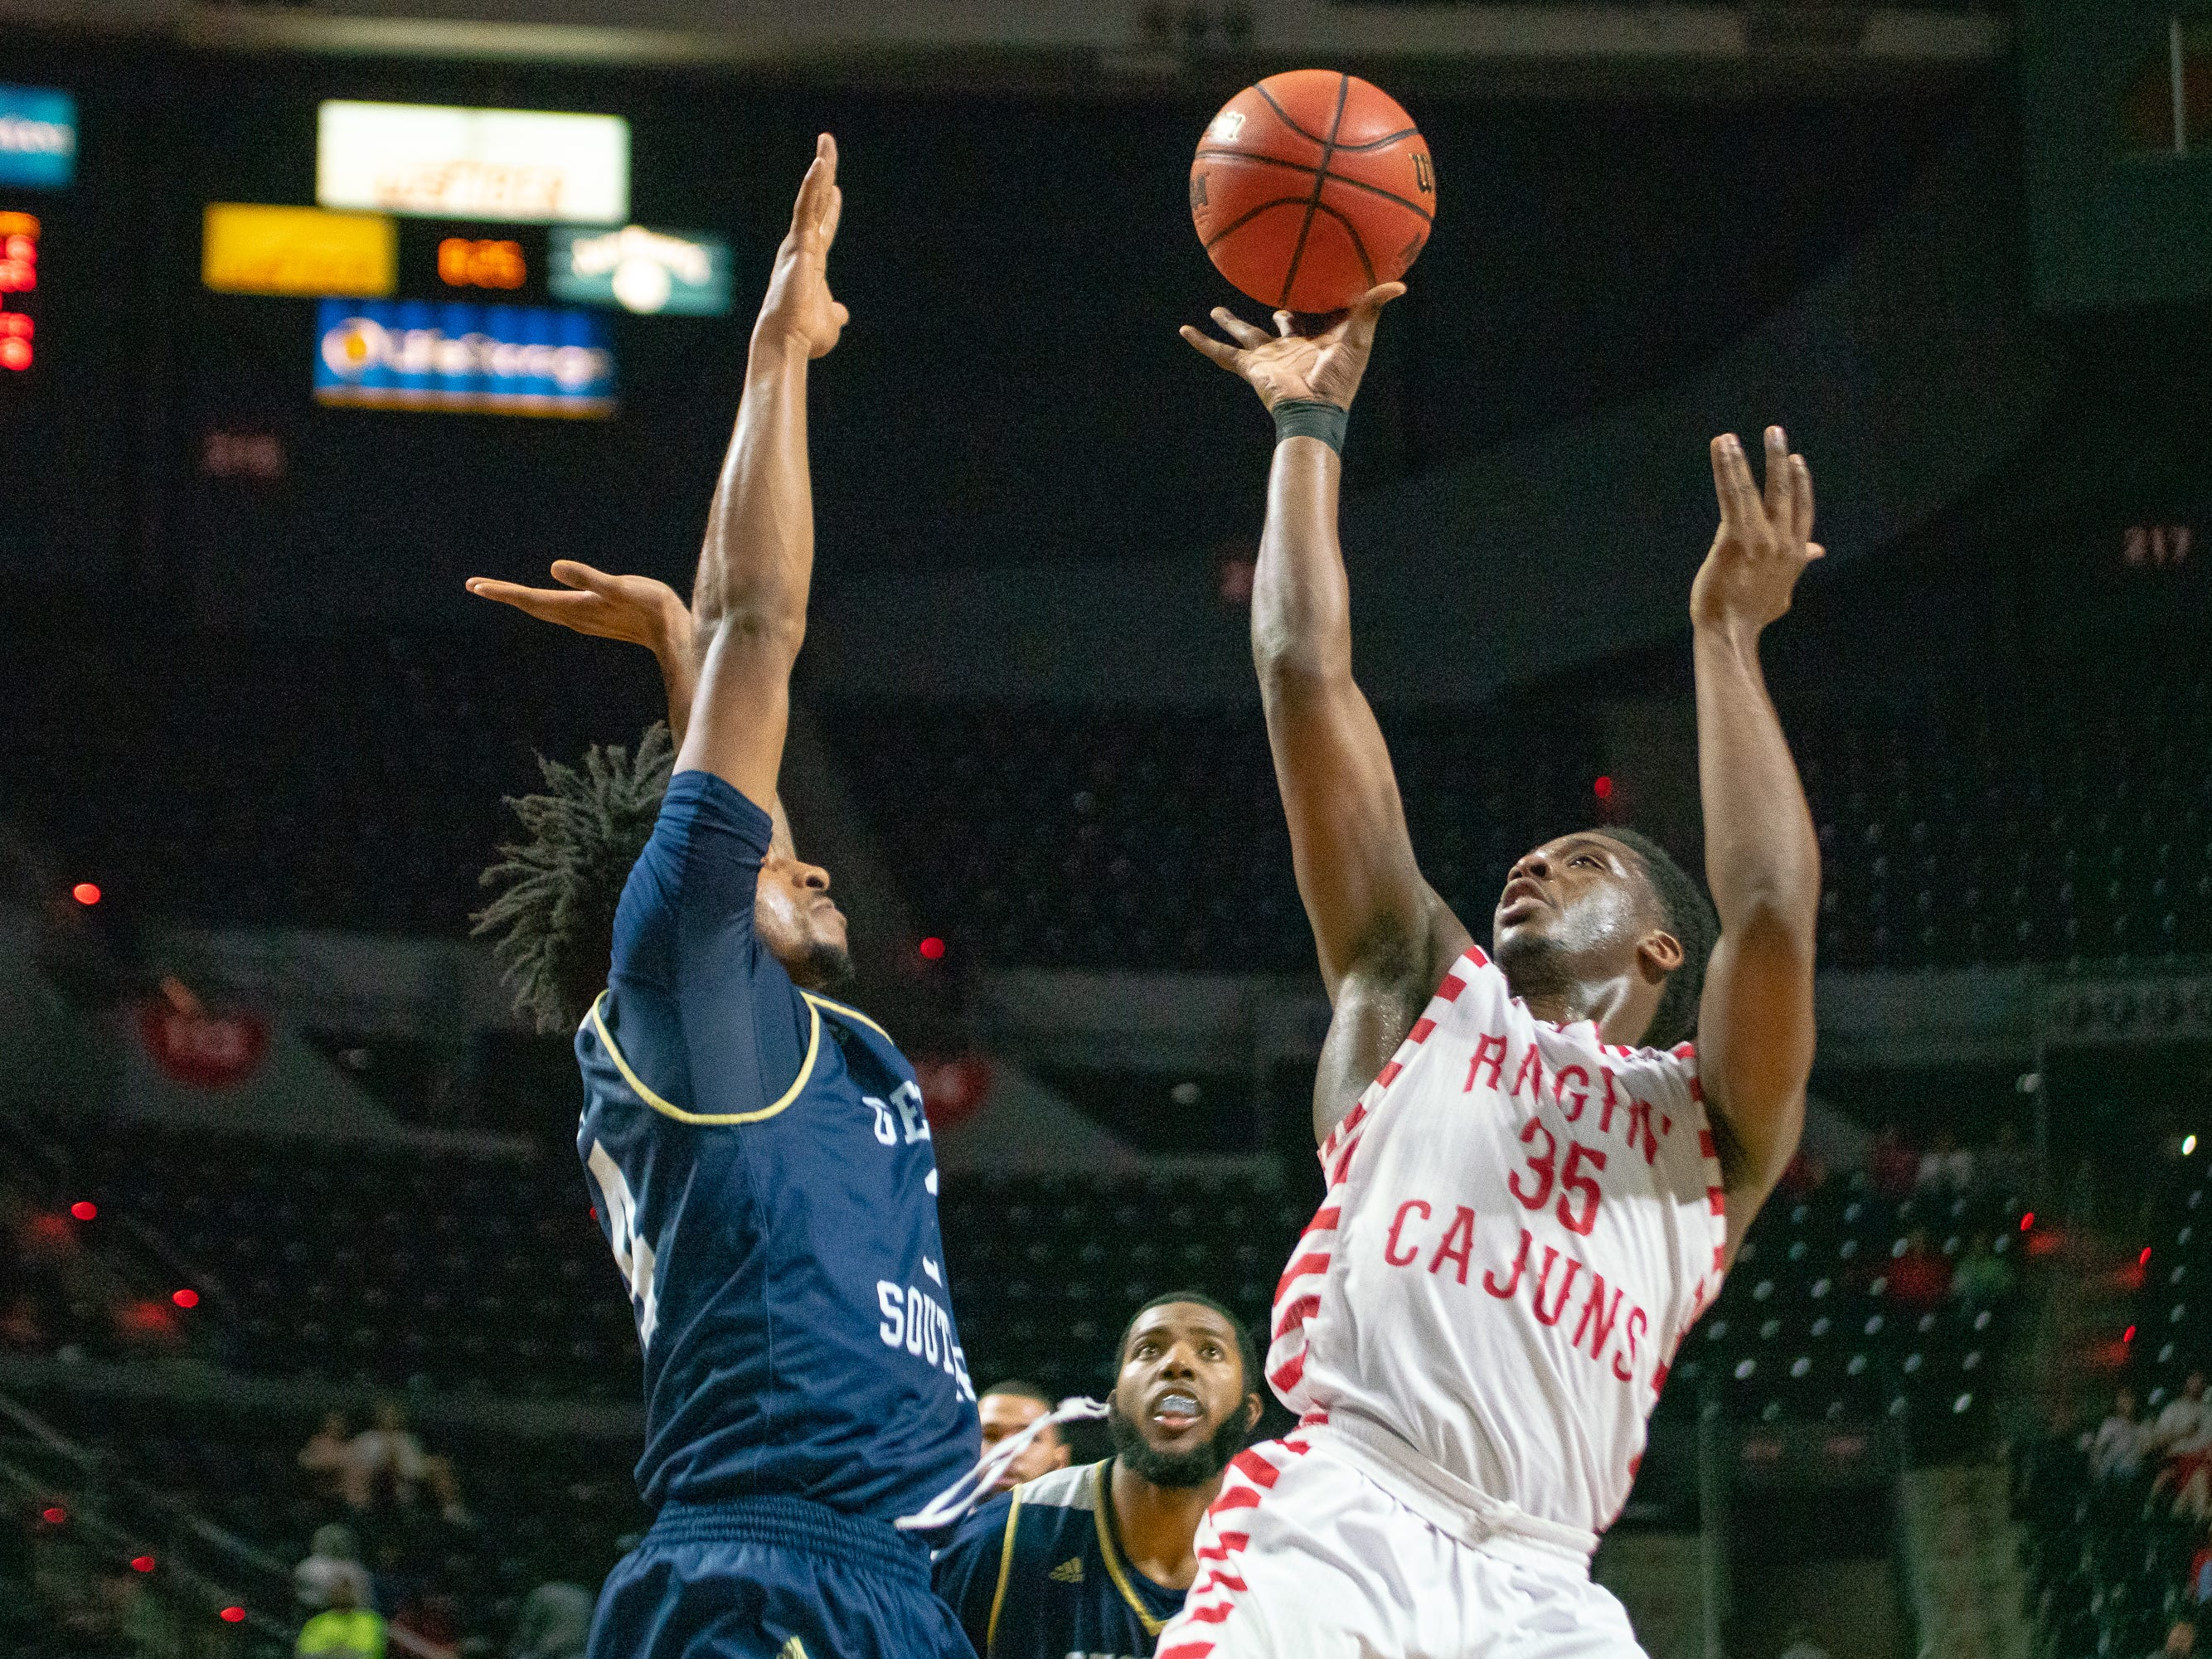 UL's Marcus Stroman shoots the ball over a defender as the Ragin' Cajuns take on the Georgia Southern Eagles at the Cajundome on Feb. 6, 2019.